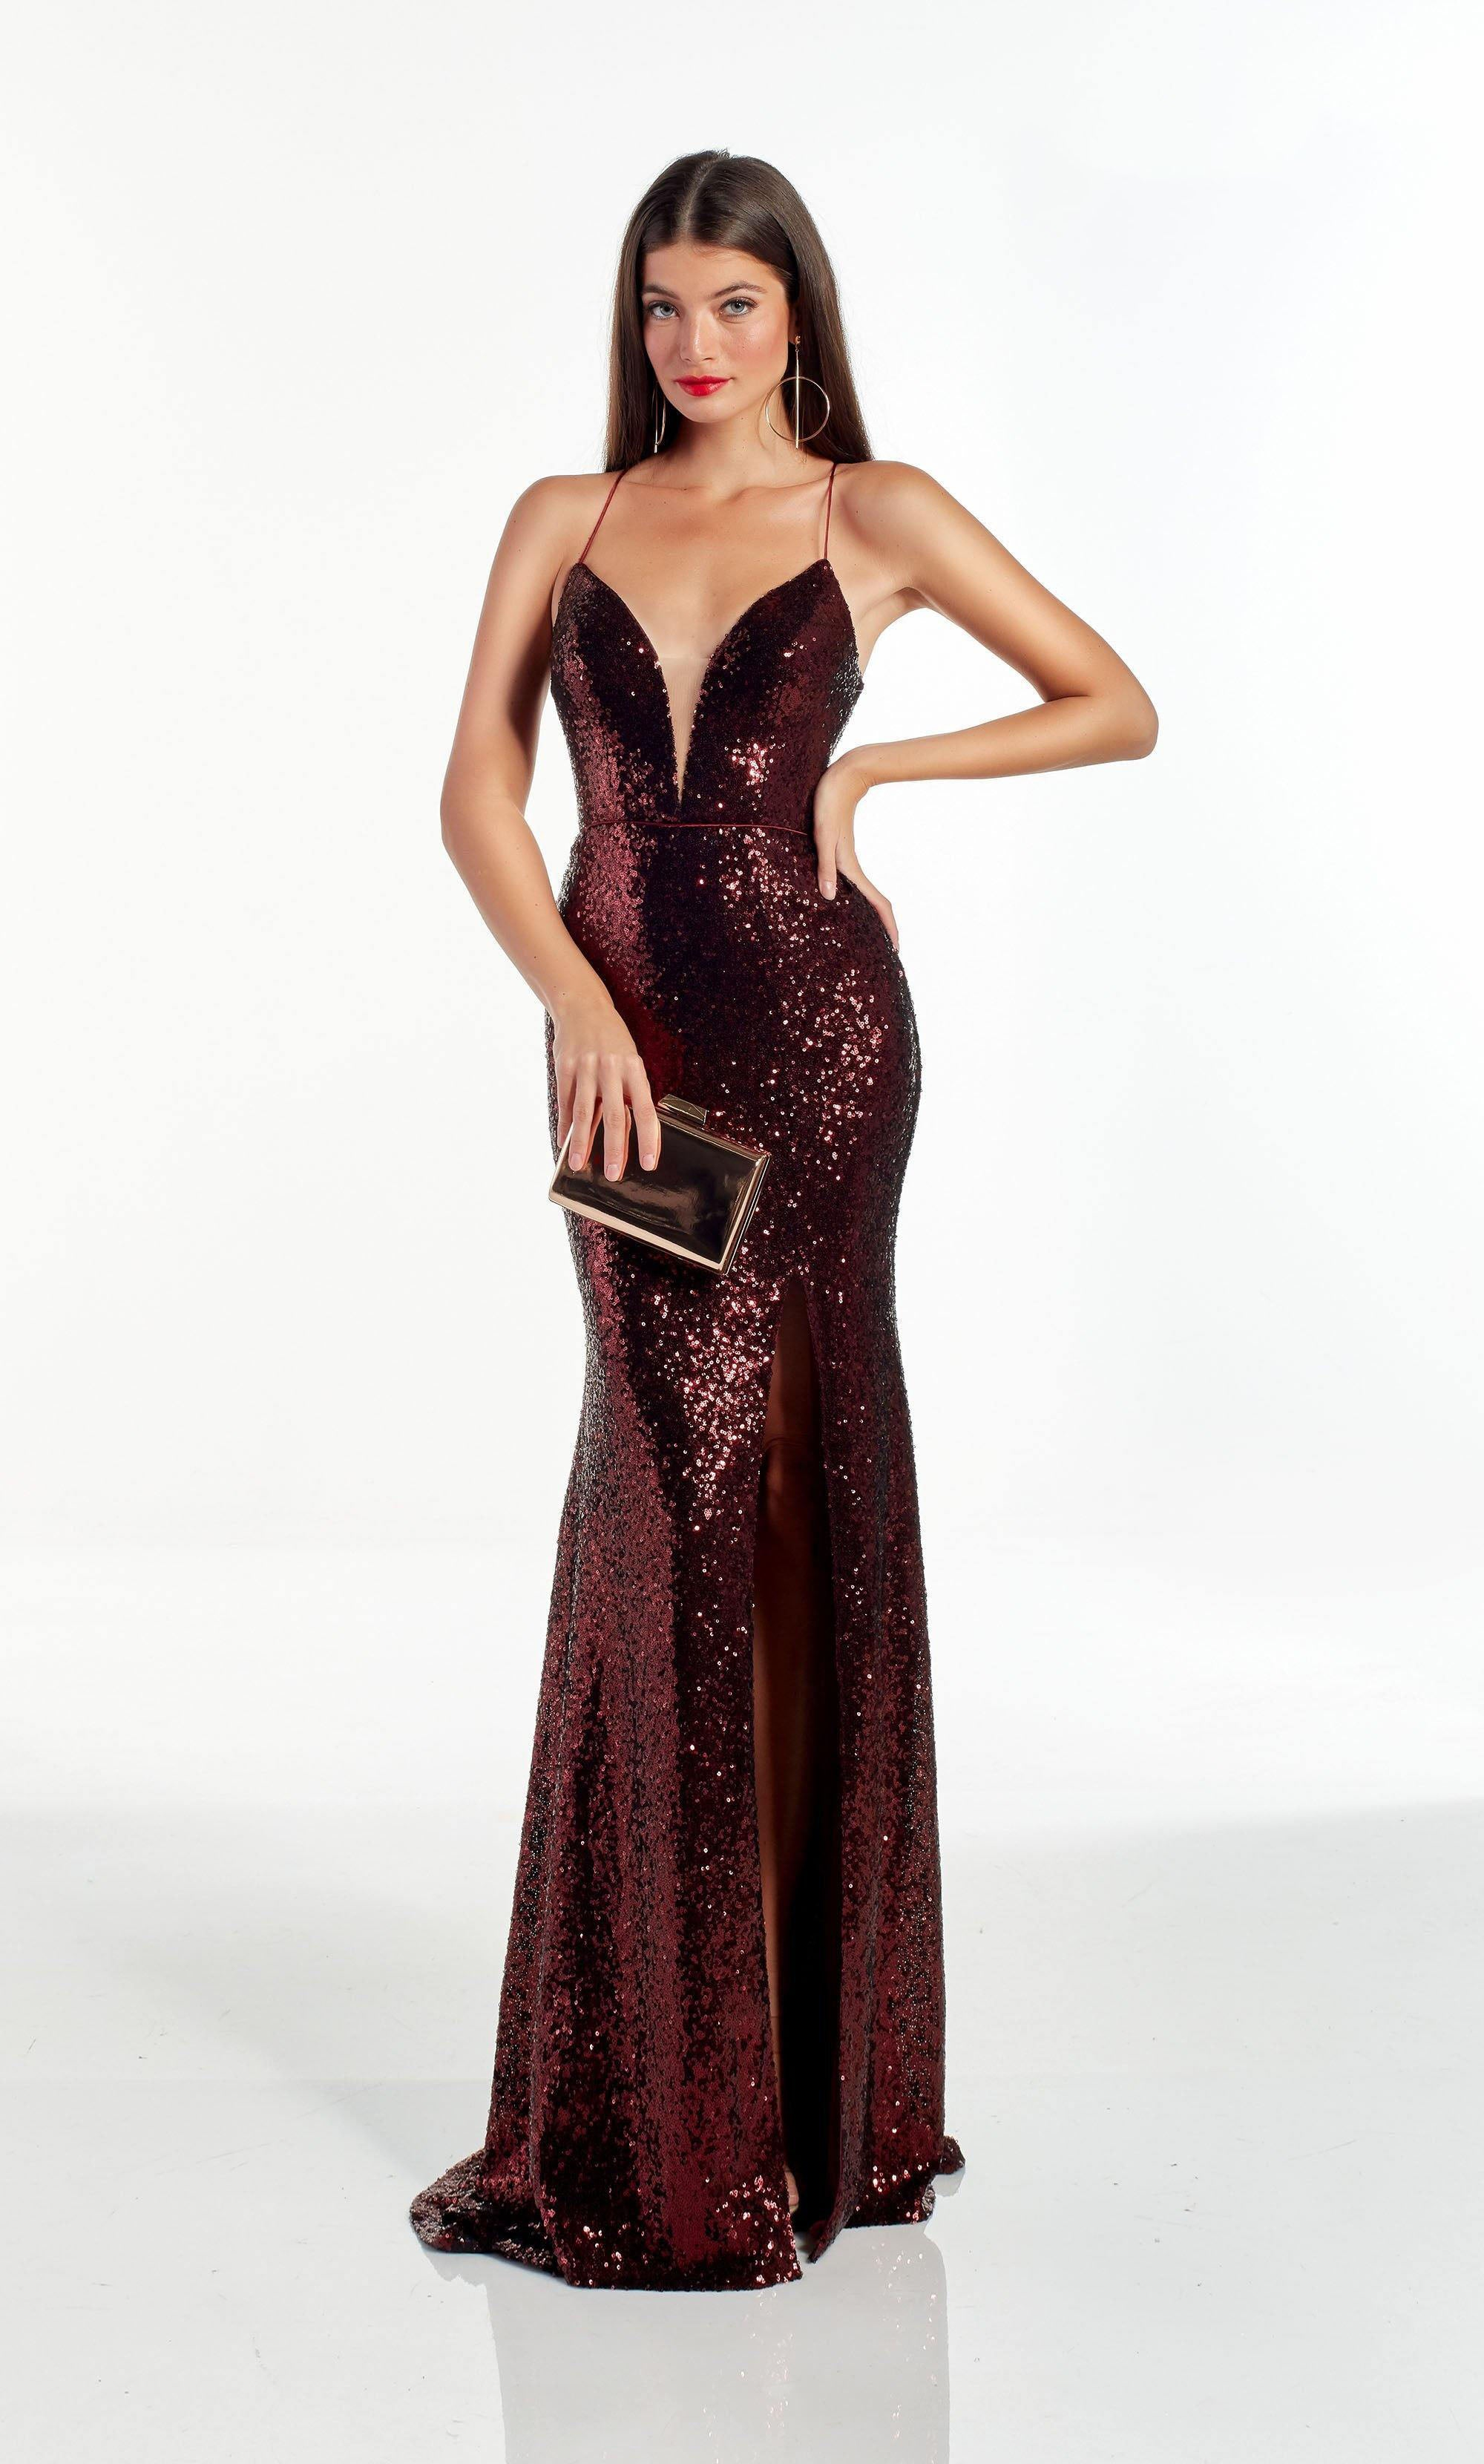 Fully sequin Burgundy fit and flare prom dress with a plunging neckline